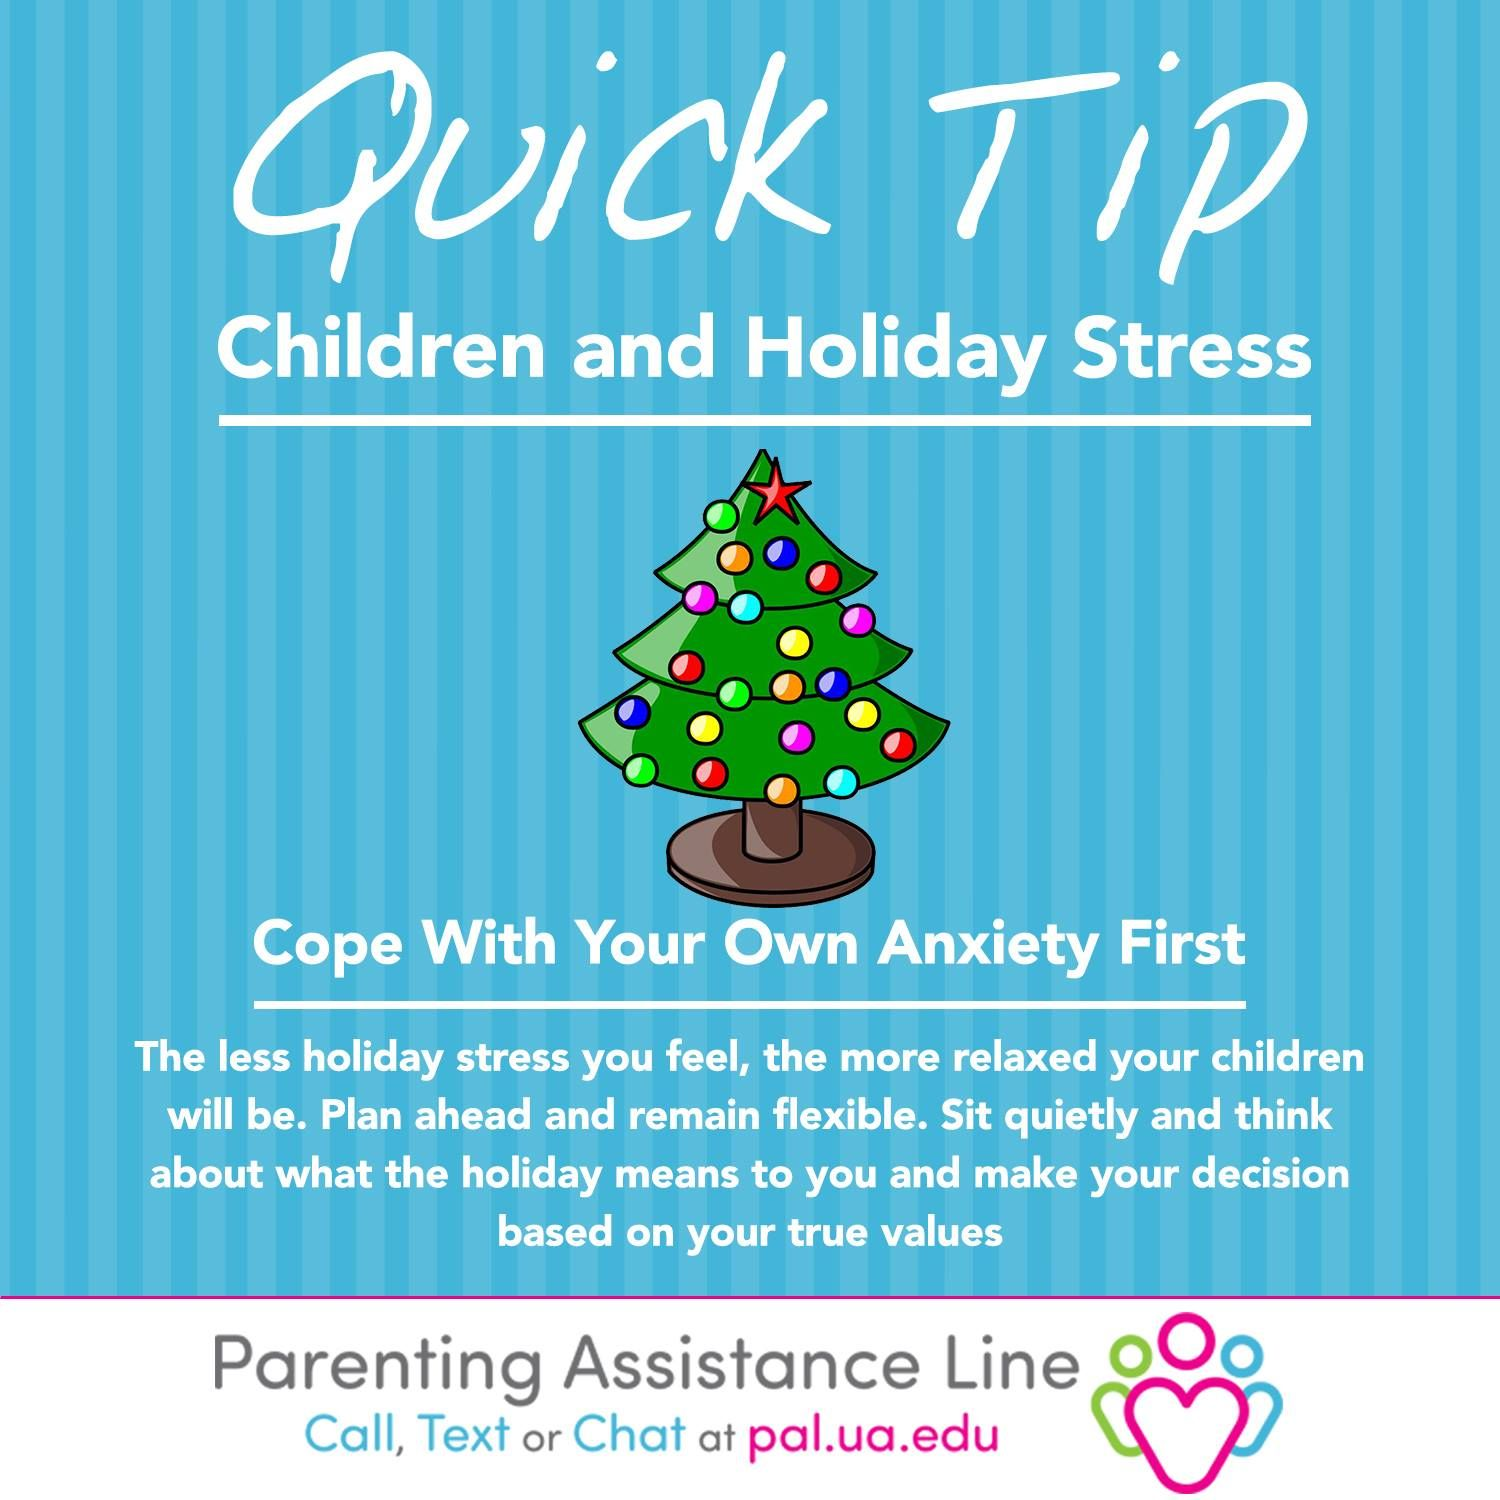 Plan ahead for the holiday season, and remind yourself